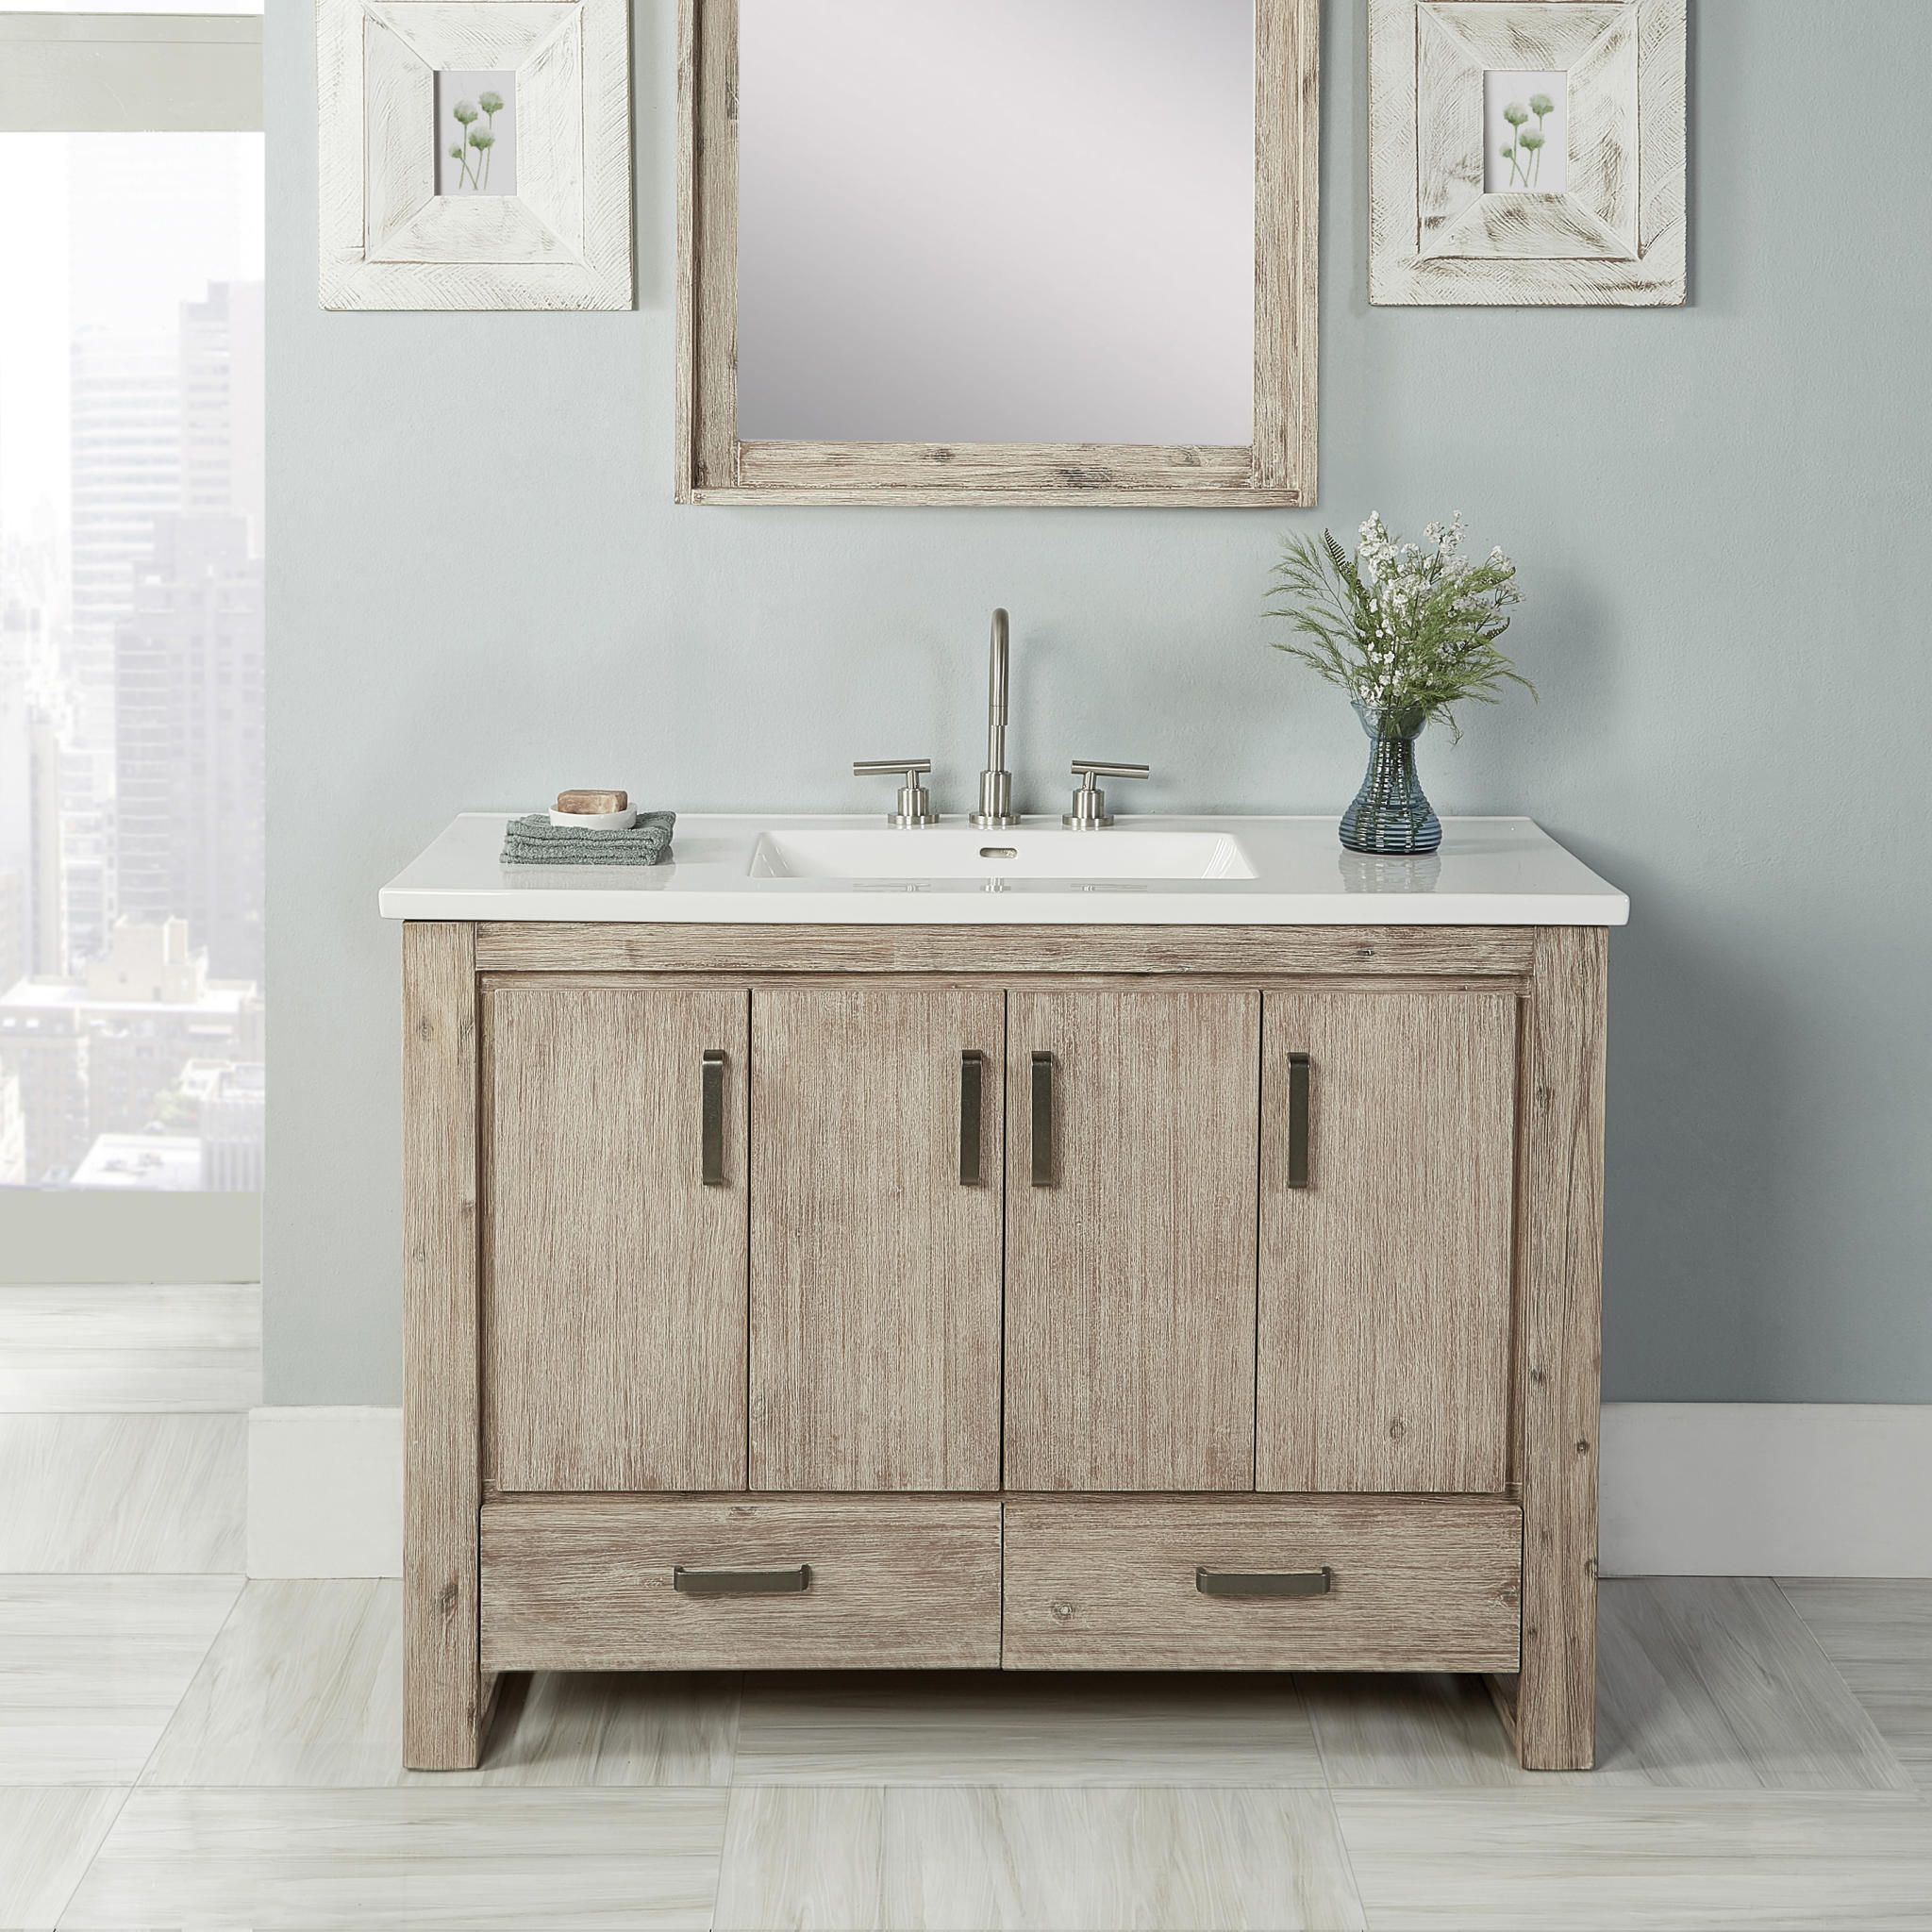 Find Shop For And Buy Fairmont Designs 1530 V48 Bathroom Vanity At Qualitybath Com For 1 275 00 With Free Shipping Bathroom Vanity Vanity 48 Vanity